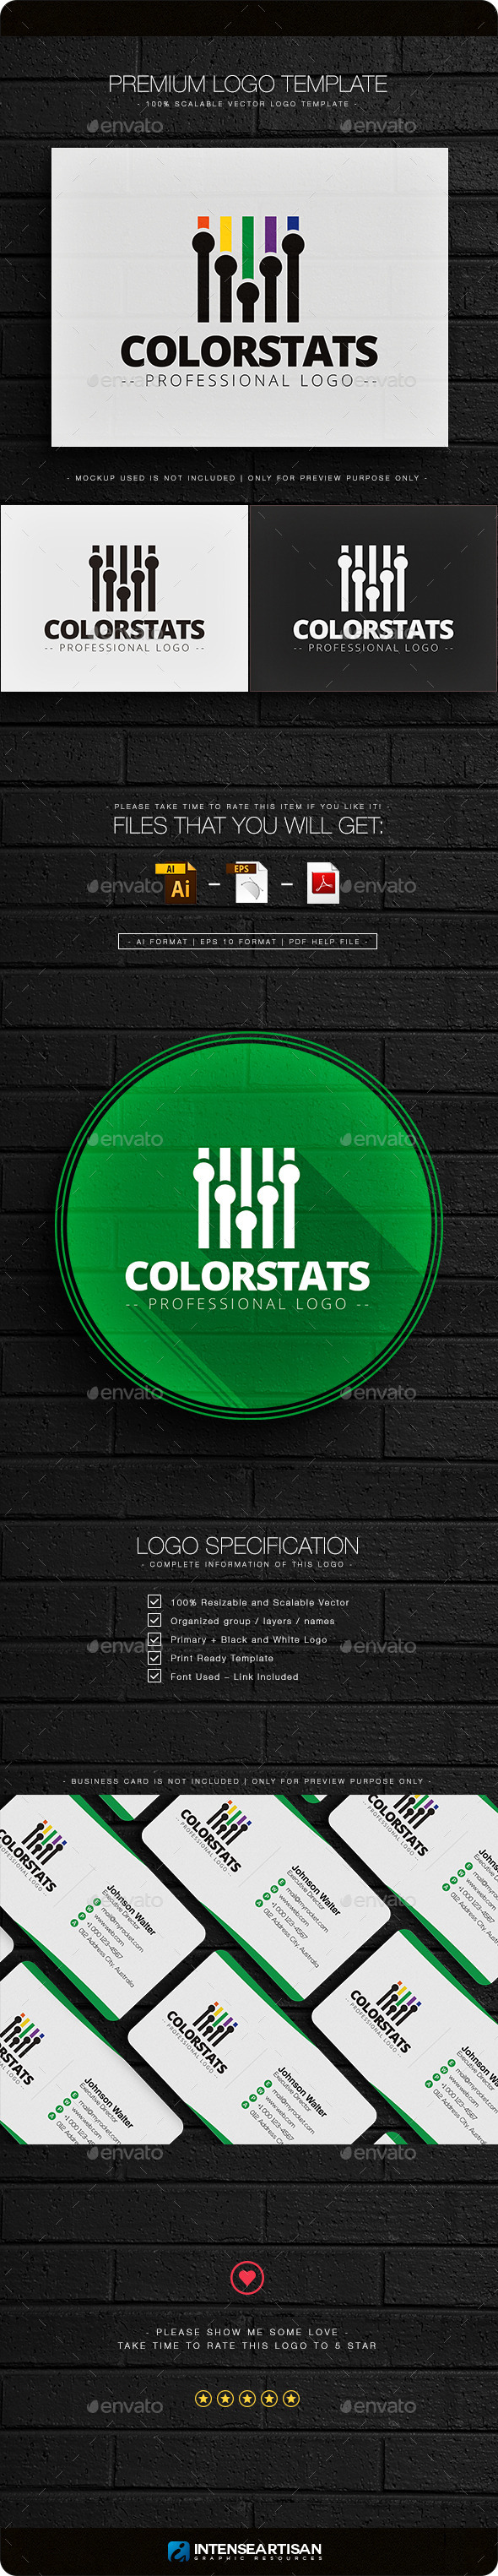 Color Stats Logo Template - Objects Logo Templates